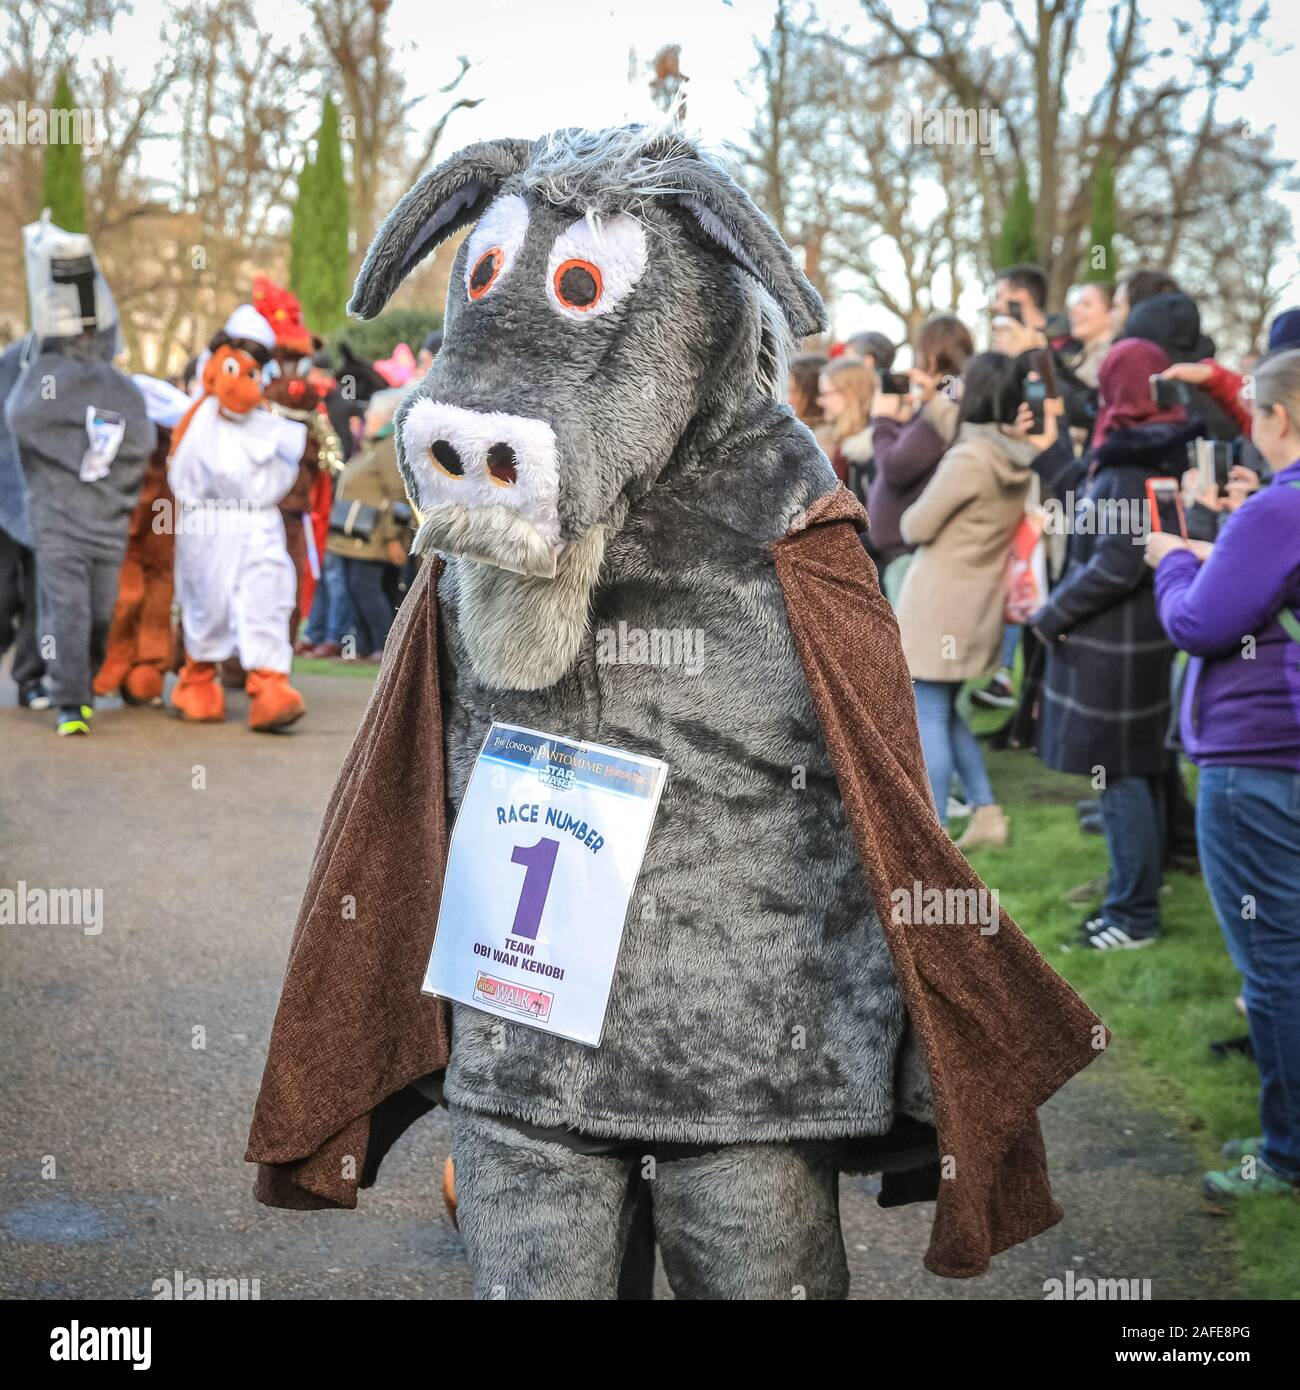 Greenwich London 15th Dec 2019 And They Re Off The Madcap Panto Horses In Their Race From Pub To Pub In It S 10th Anniversary Edition The London Pantomime Horse Race 2019 Features